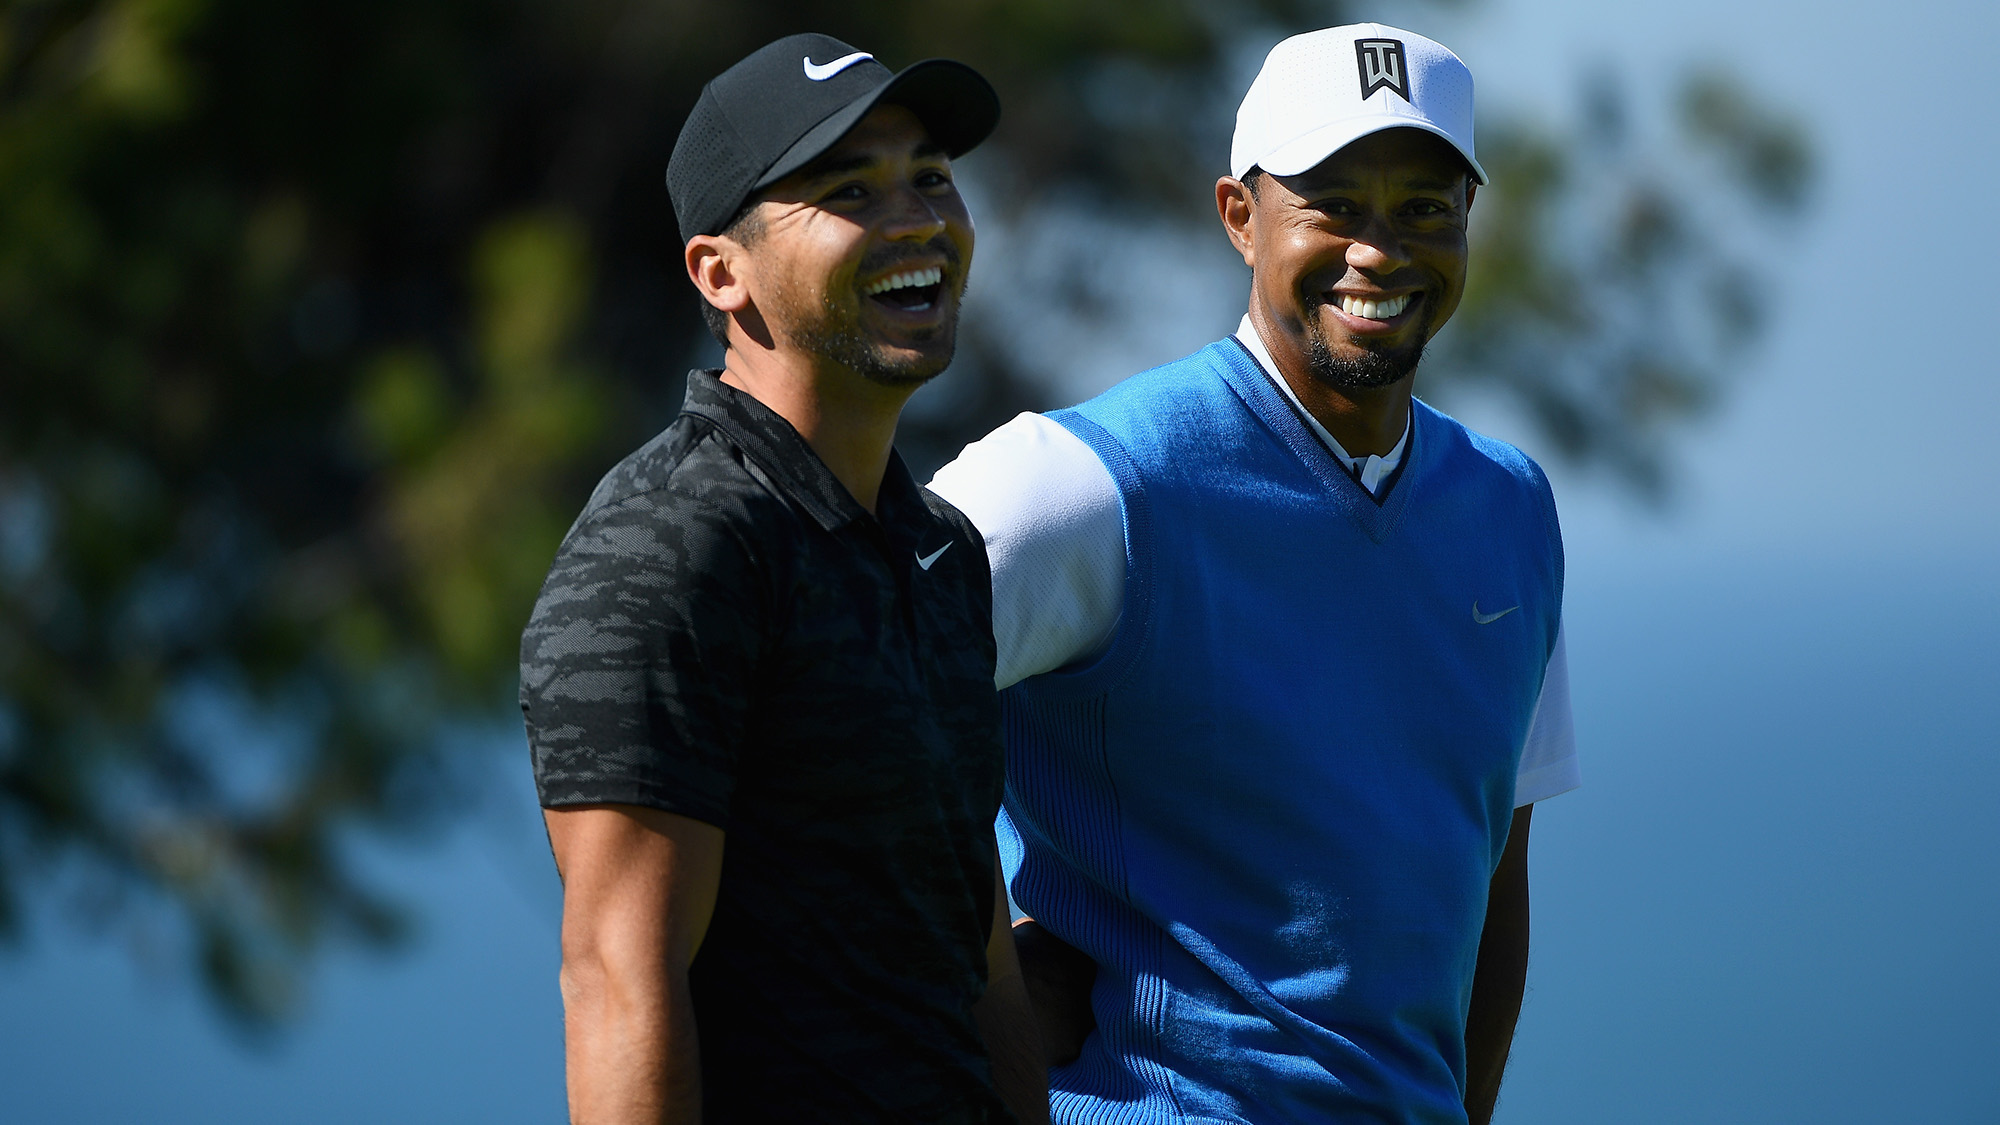 Jason Day offers sage advice to mentor Tiger Woods